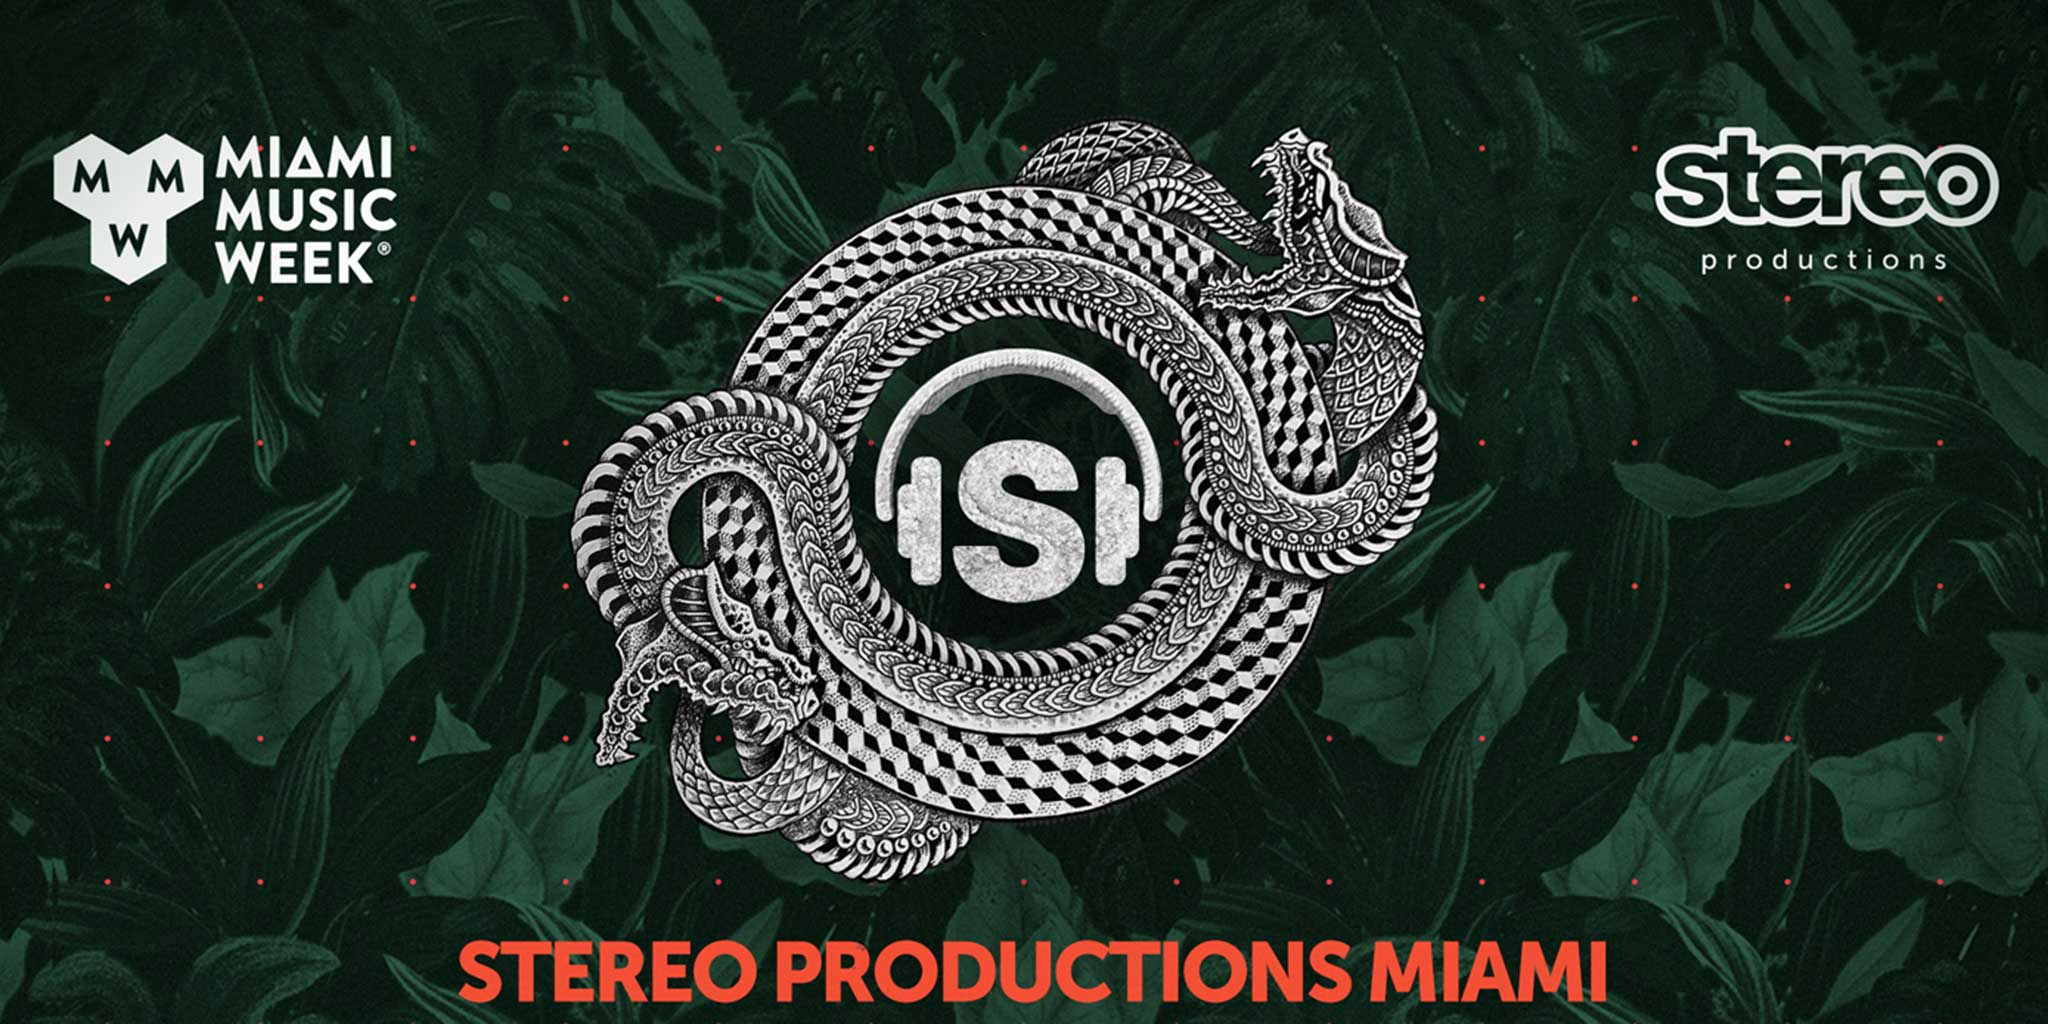 Stereo Productions + MMW 2017 Image